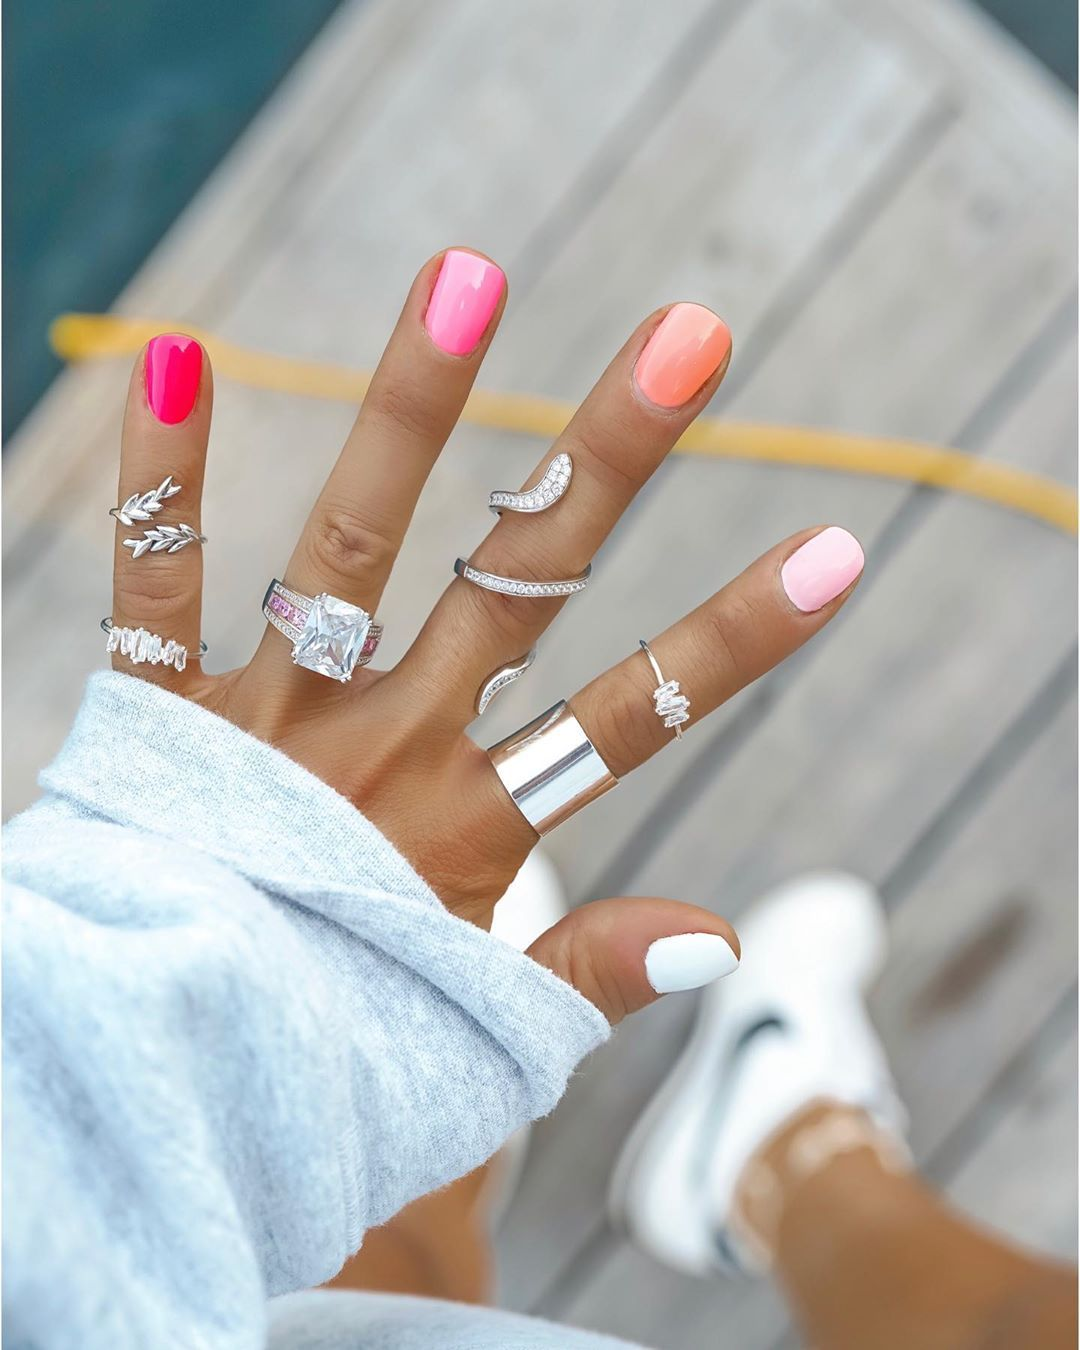 Erica Shaw On Instagram Pink Pink Pink Posting These Nails One Last Time Cause They Ve Been Soo Popul In 2020 Makeup Nails Designs Nails First Pretty Acrylic Nails